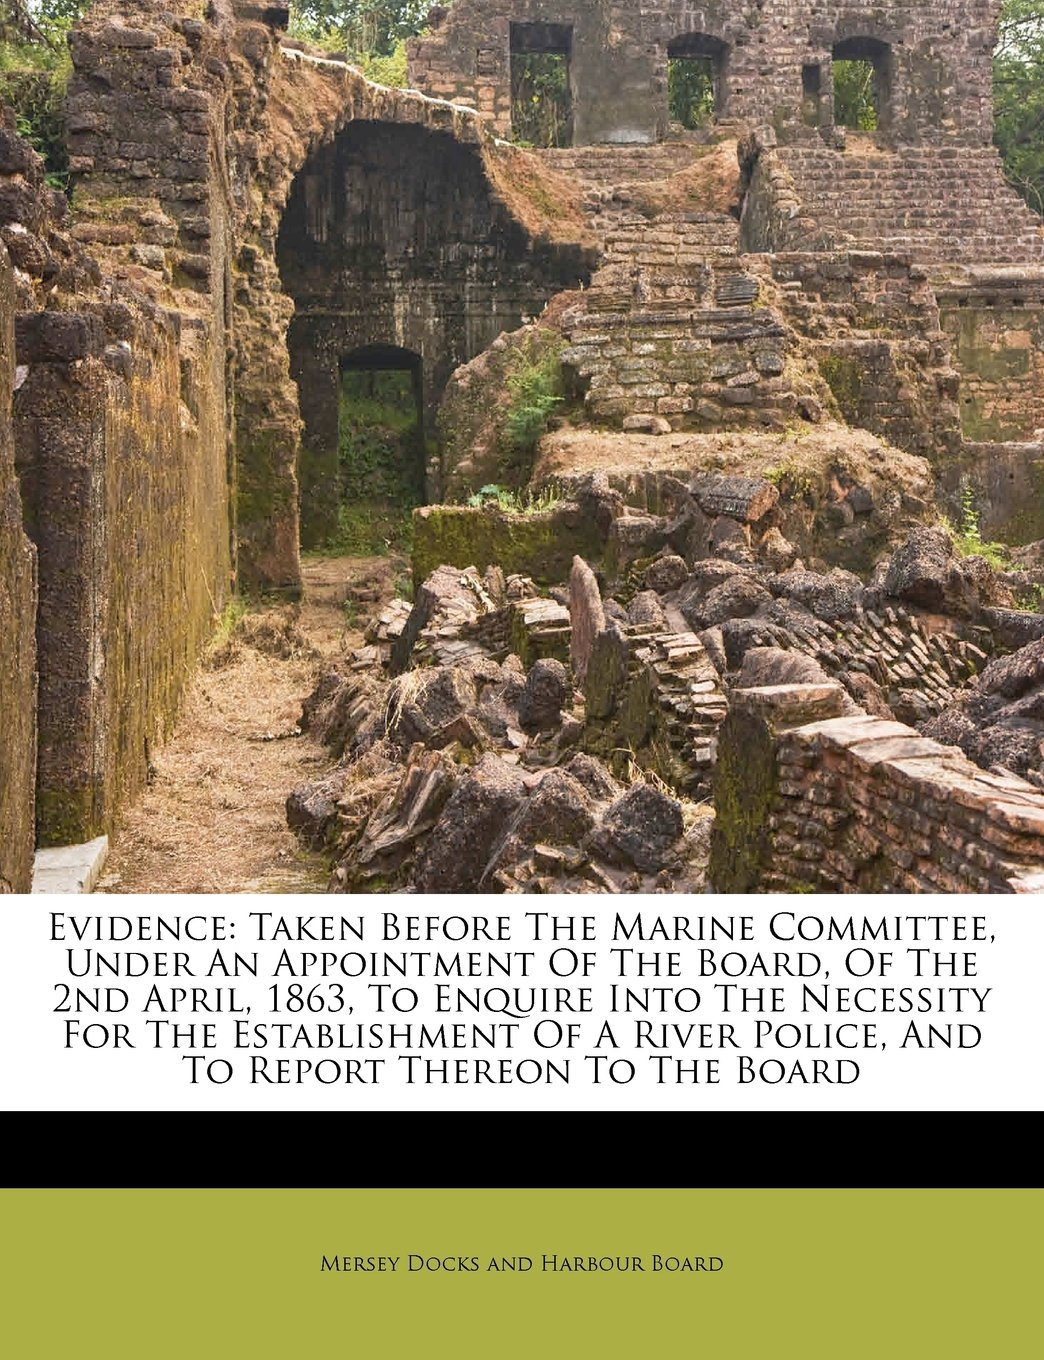 Evidence: Taken Before The Marine Committee, Under An Appointment Of The Board, Of The 2nd April, 1863, To Enquire Into The Necessity For The ... Police, And To Report Thereon To The Board pdf epub